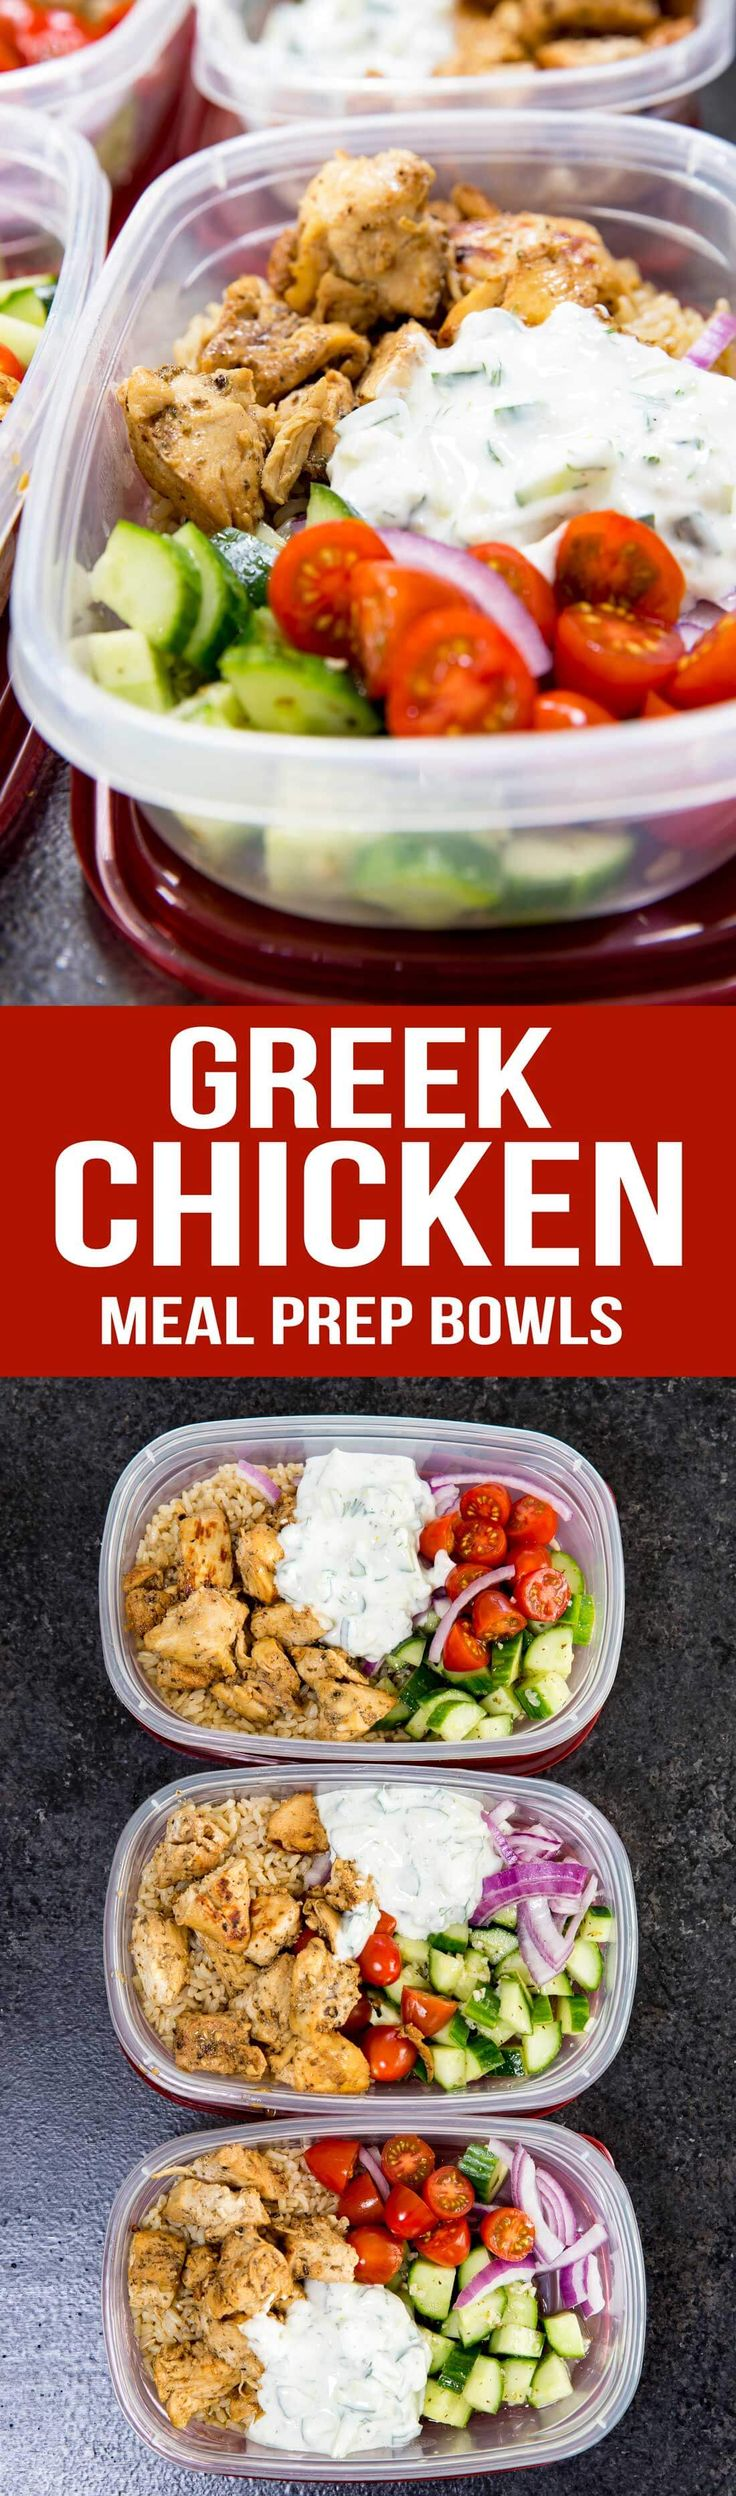 Greek Chicken Meal Prep Bowls are marinated grilled chicken, cucumber salad, and tzatziki